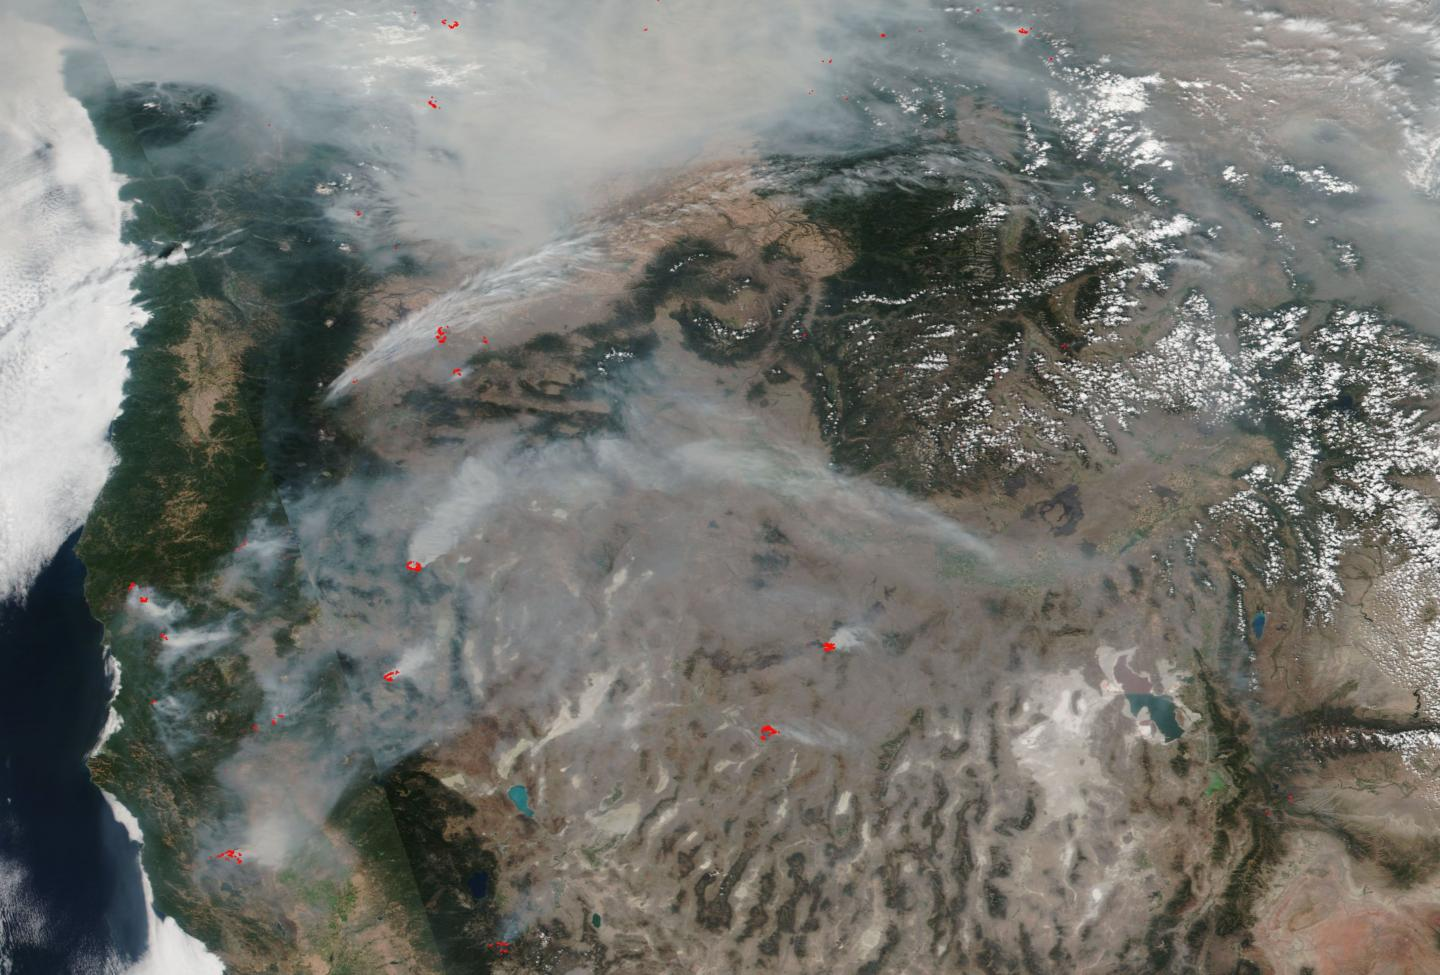 Fires Across the US